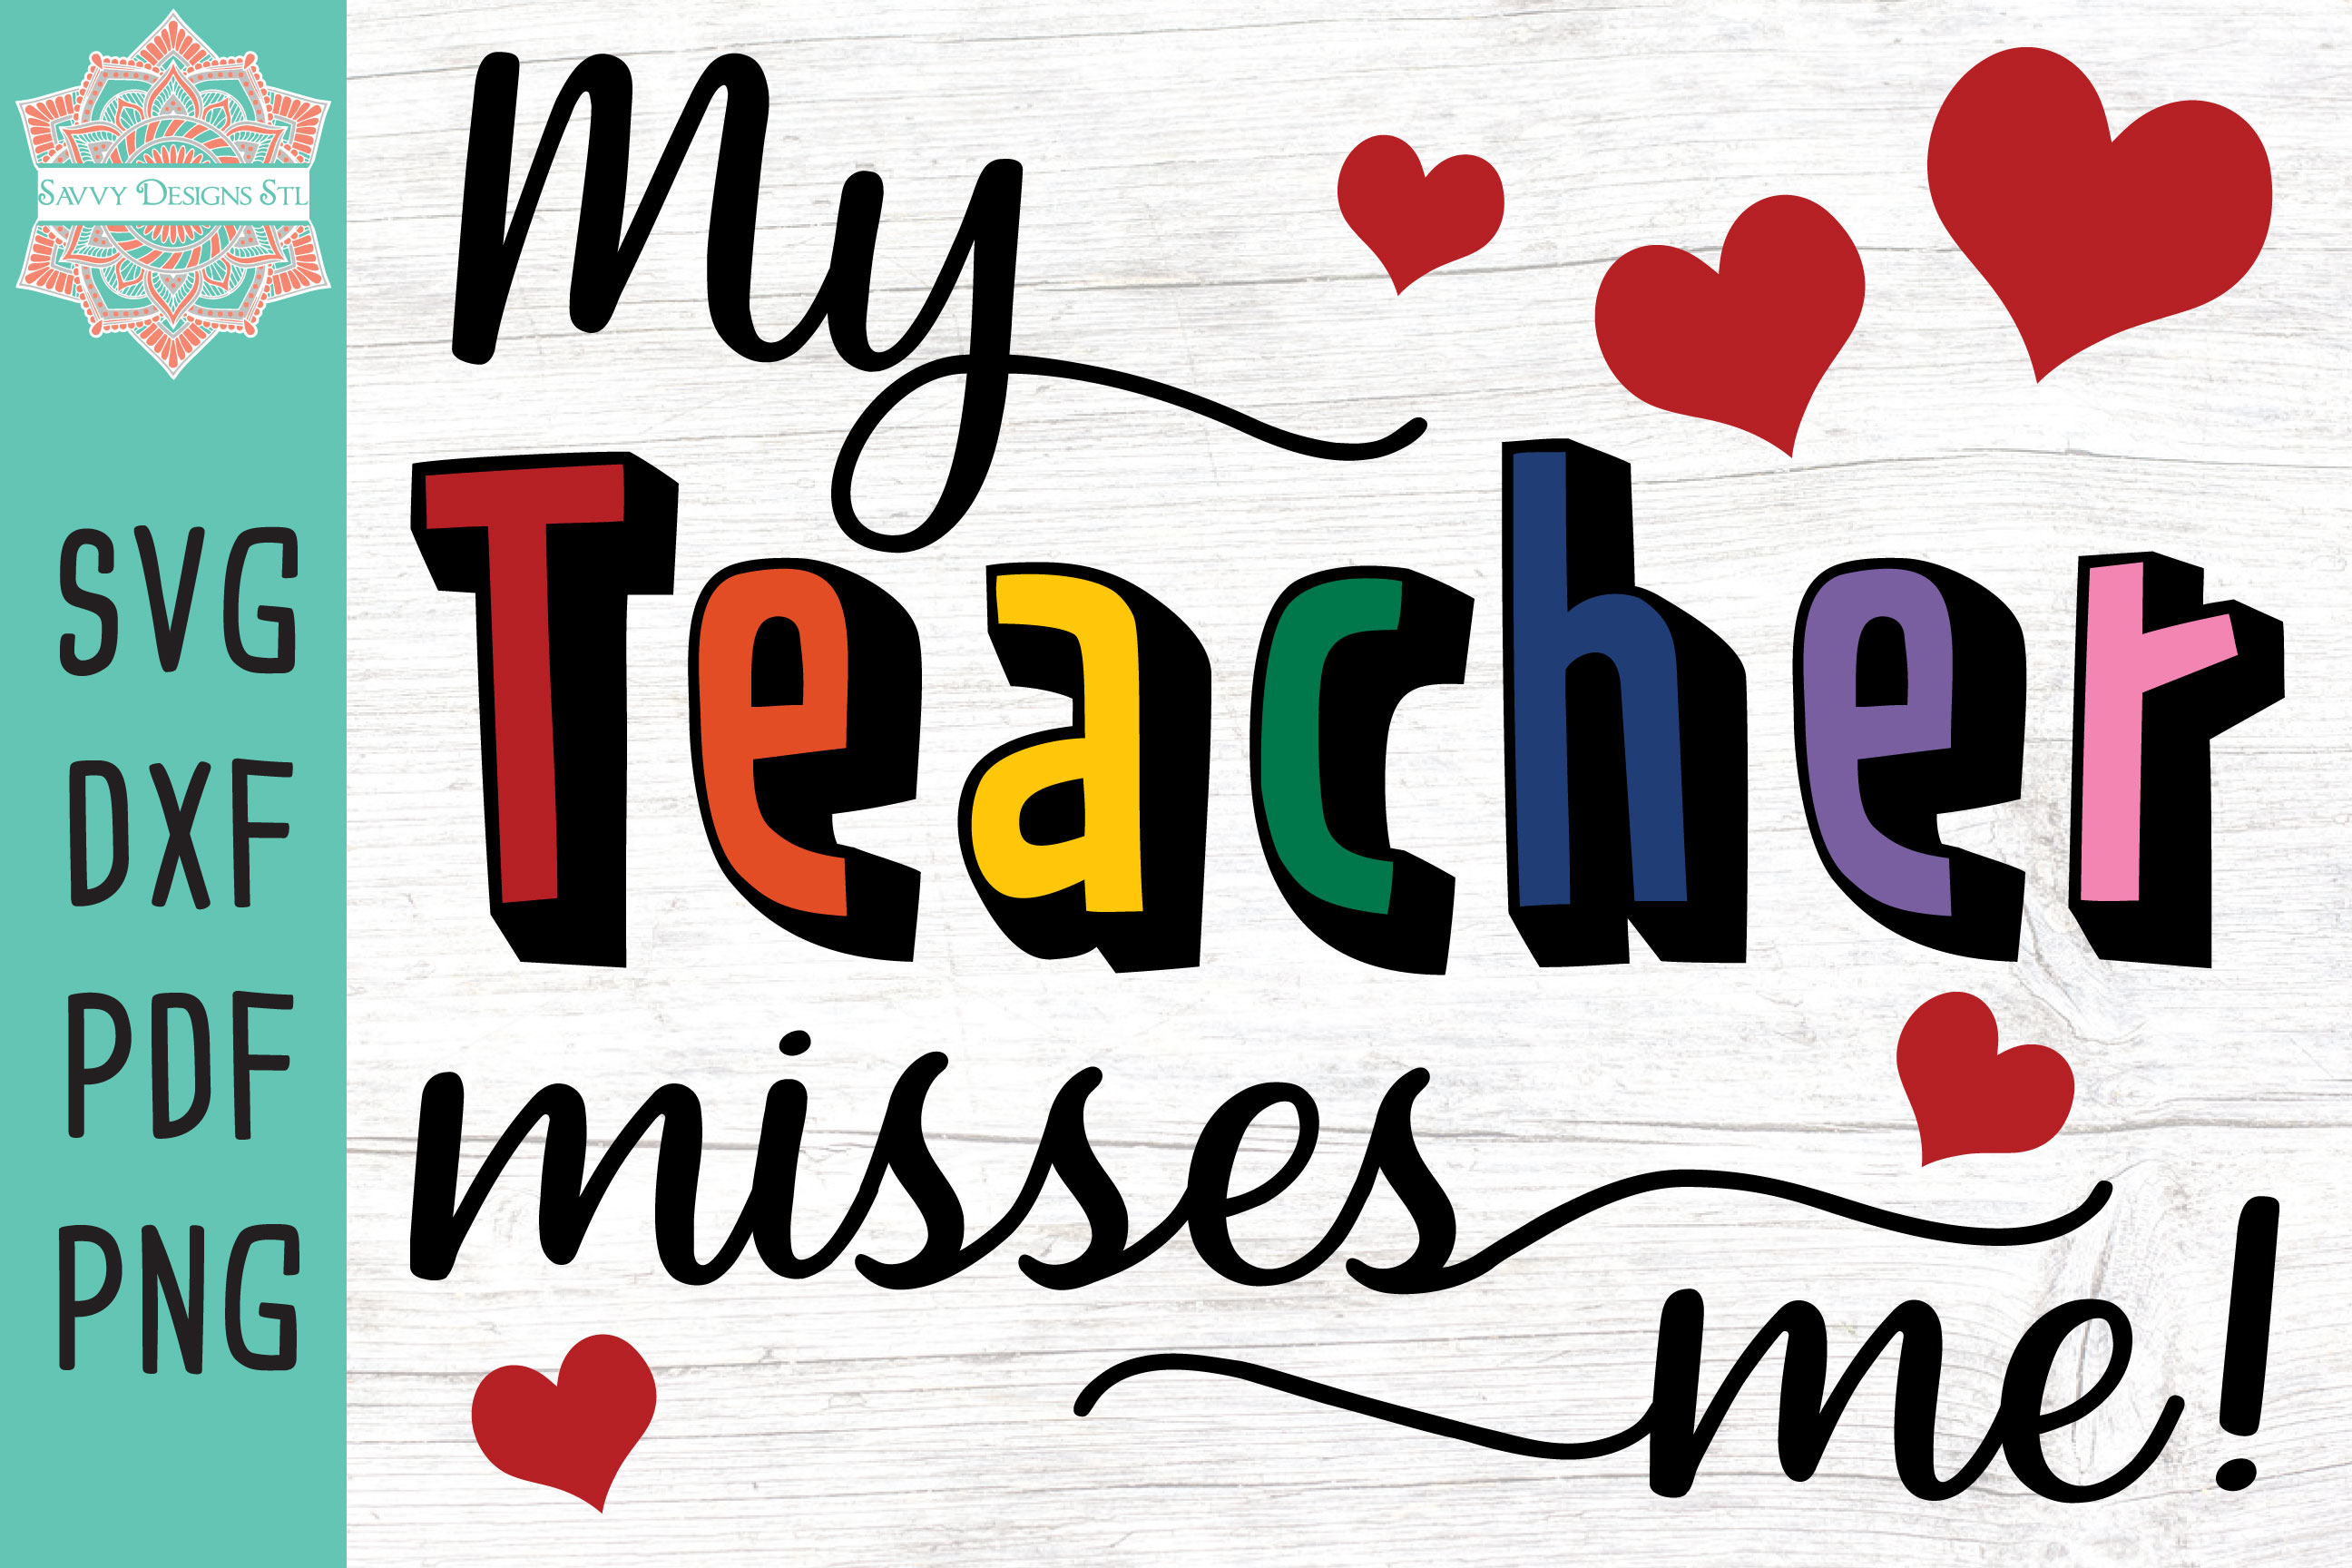 Download Free My Teacher Misses Me Cut File Graphic By Savvydesignsstl for Cricut Explore, Silhouette and other cutting machines.